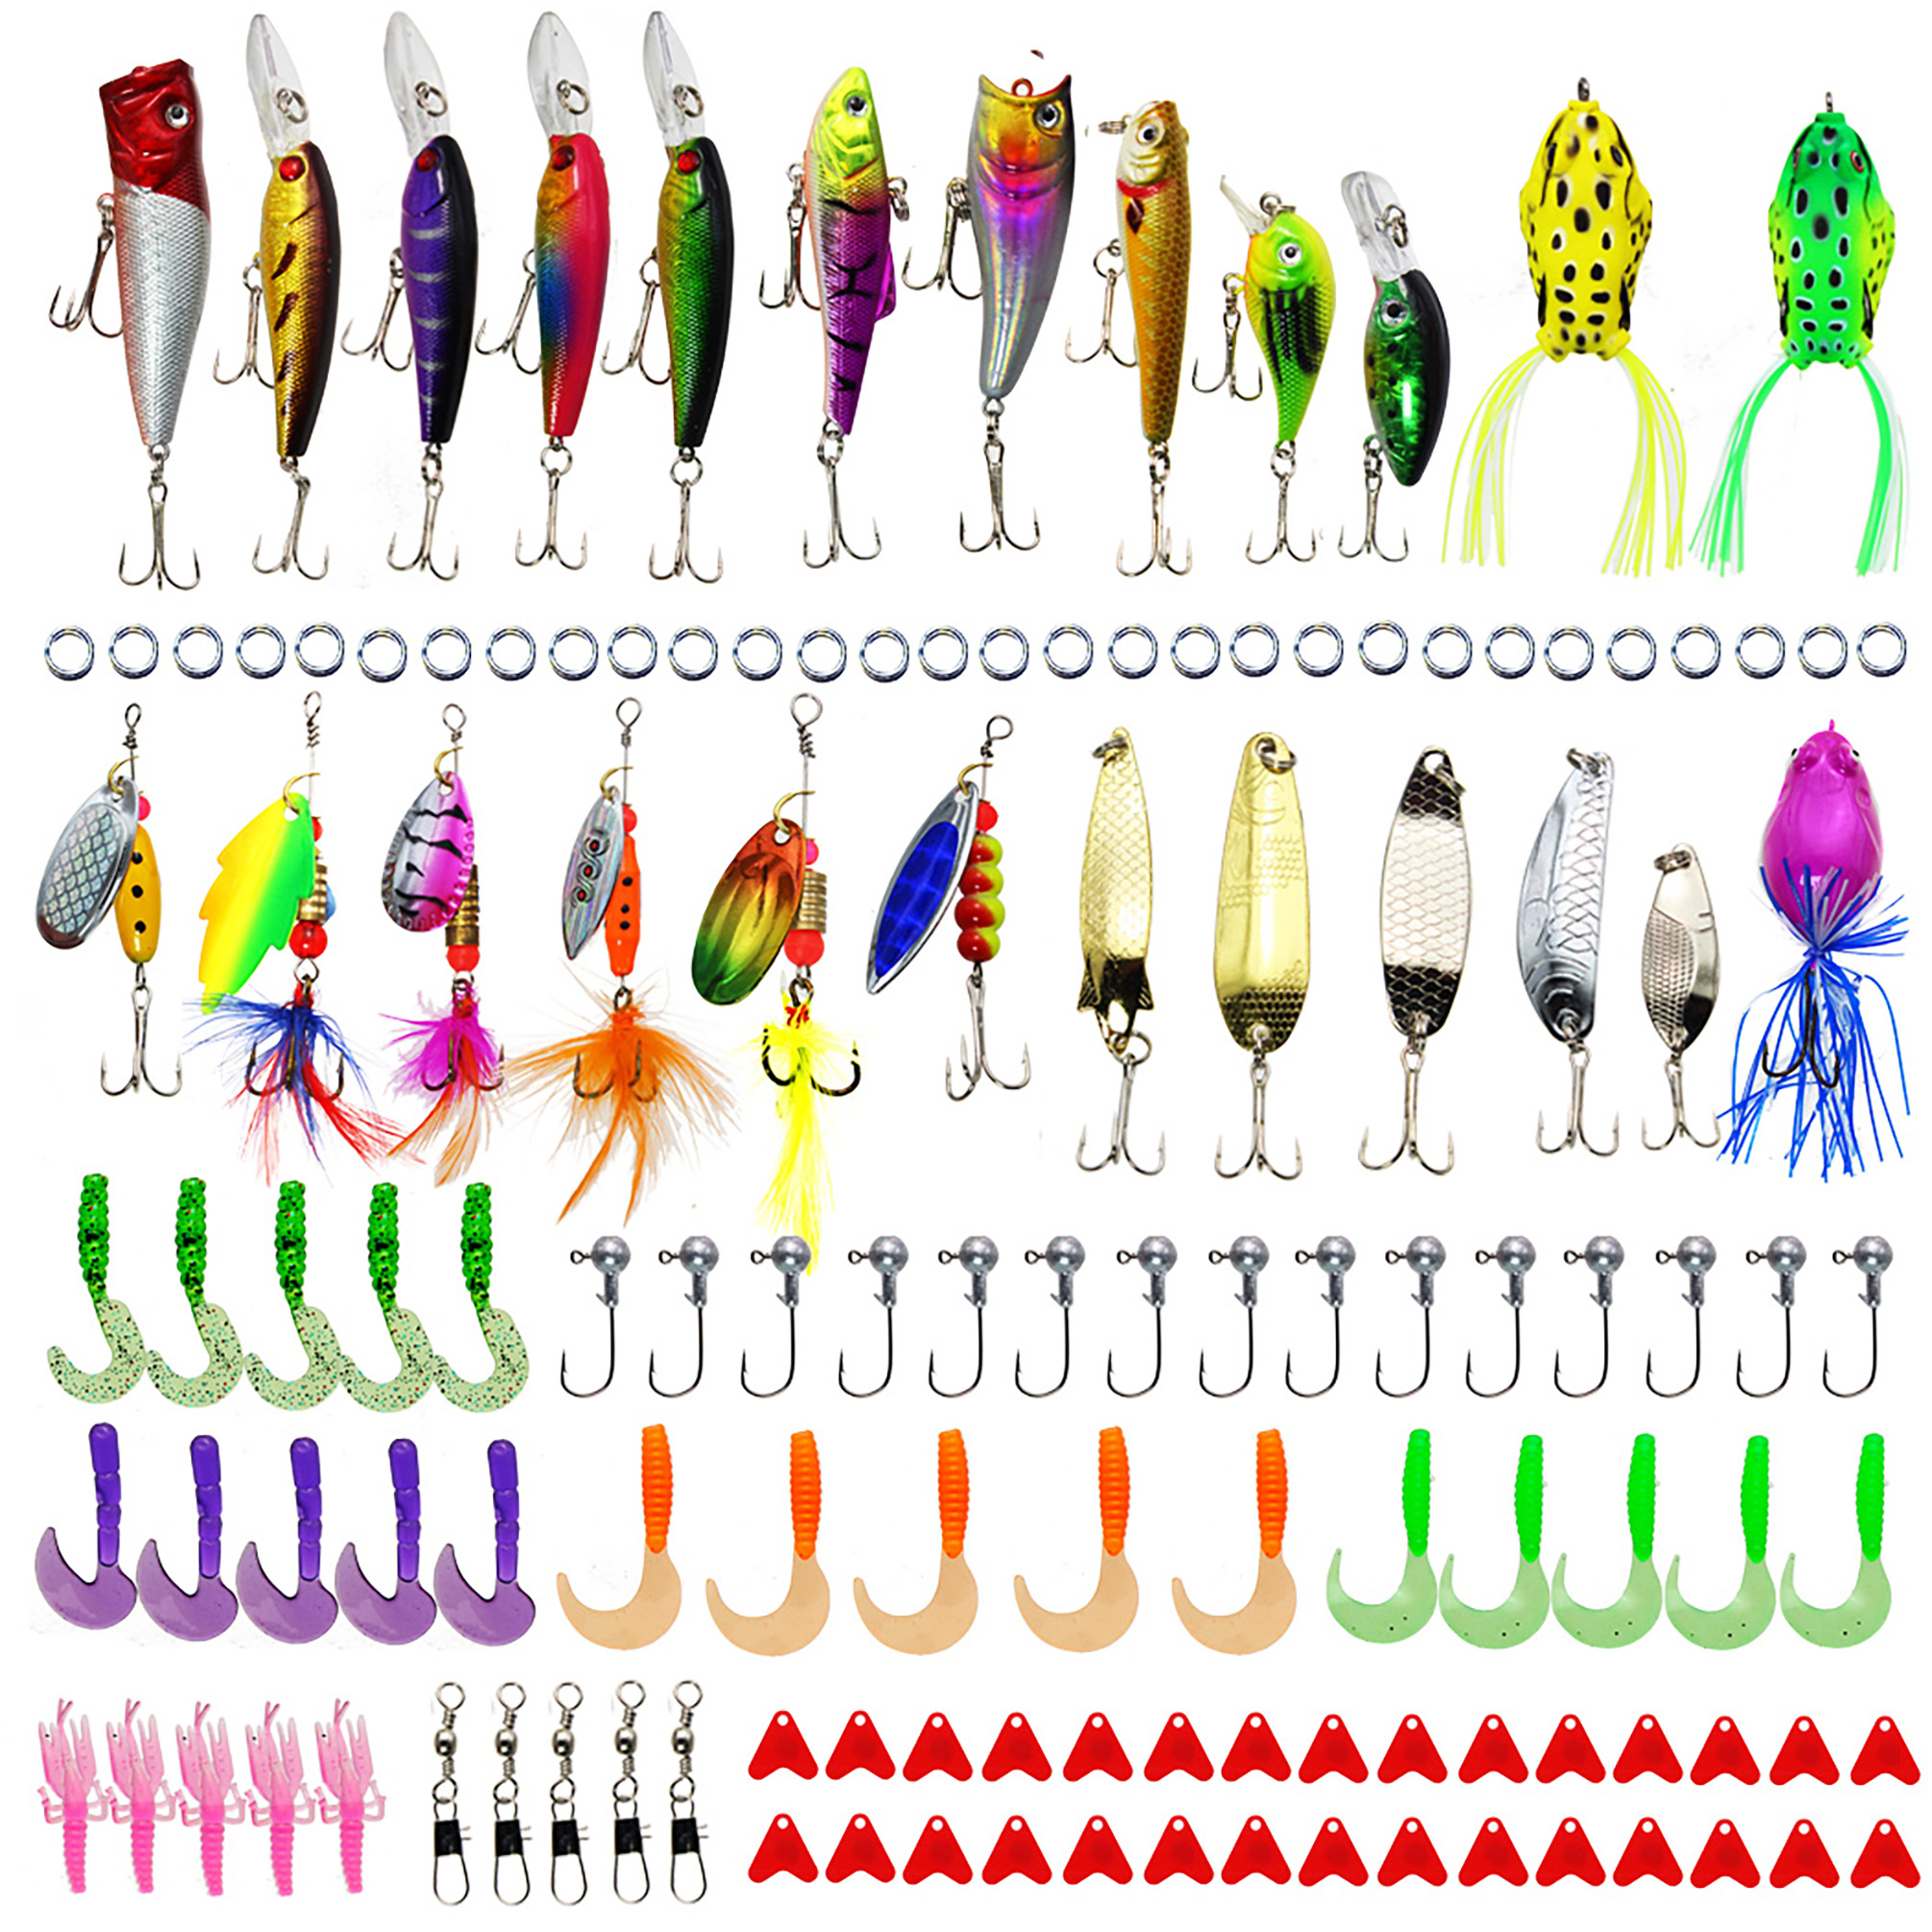 LotFancy 129 PCS Fishing Lures Set with Tackle Box, Include Frog Minnow Popper Pencil Crank Spoon Spinner Maggot Shrimp Baits Swivels for Freshwater Trout Bass Salmon